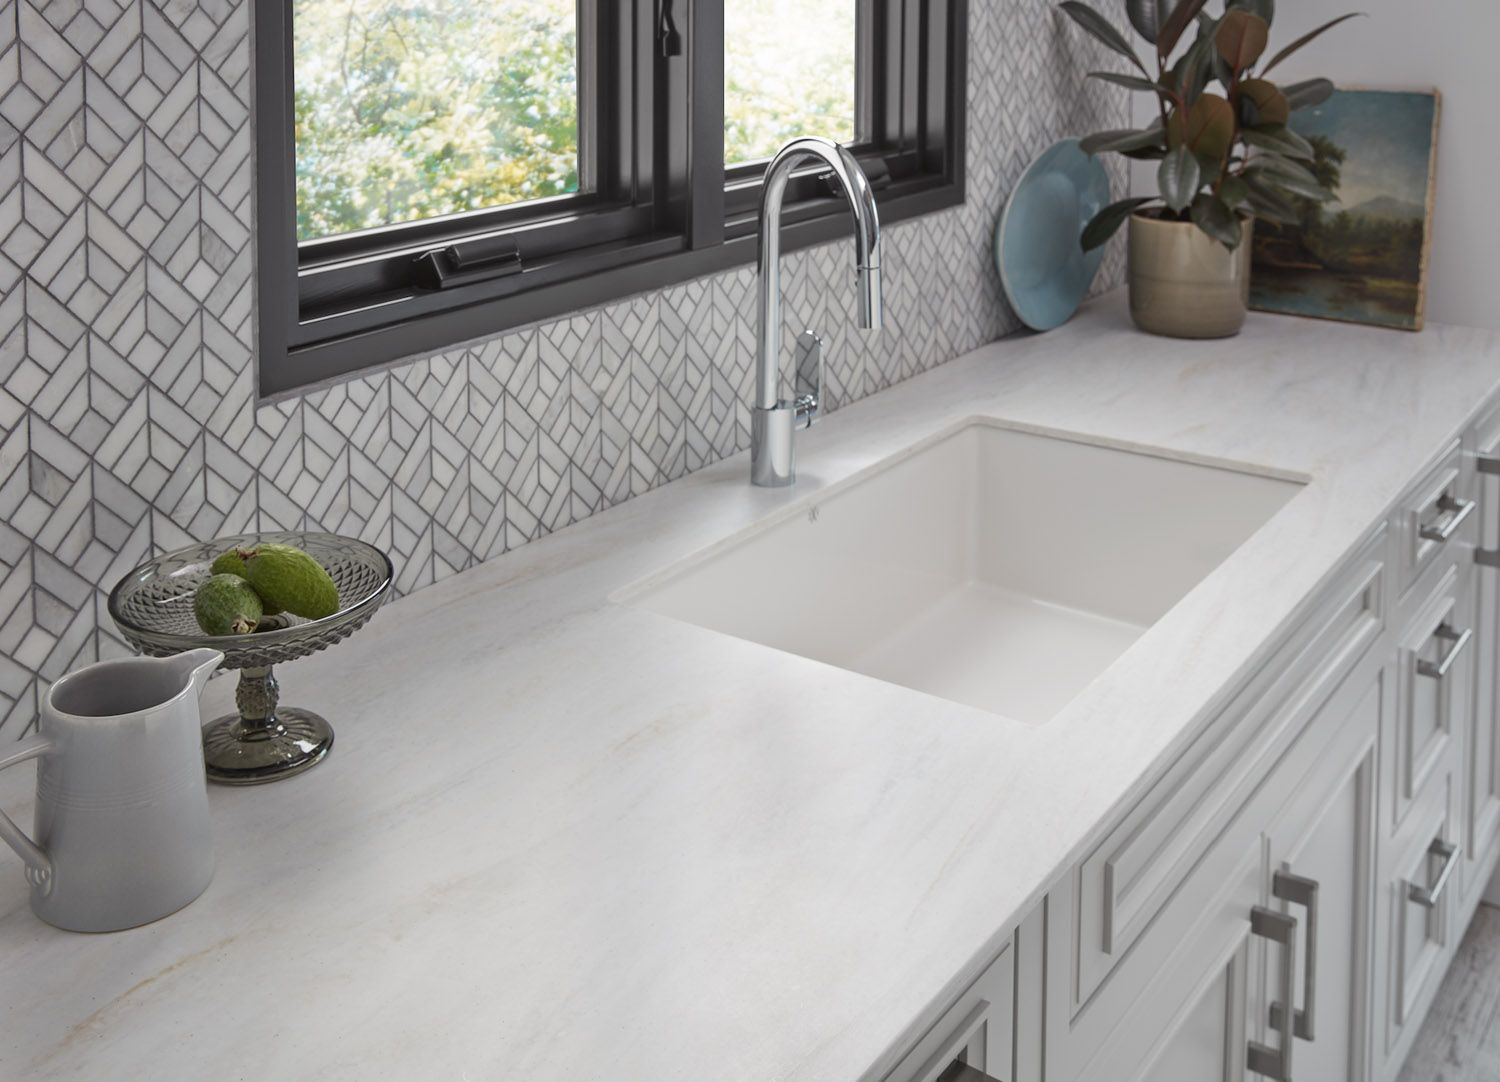 Wilsonart S New Thinscape Collection Is The Next Big Countertop Trend Rue Solid Surface Countertops Kitchen Countertops Kitchen Countertops Laminate